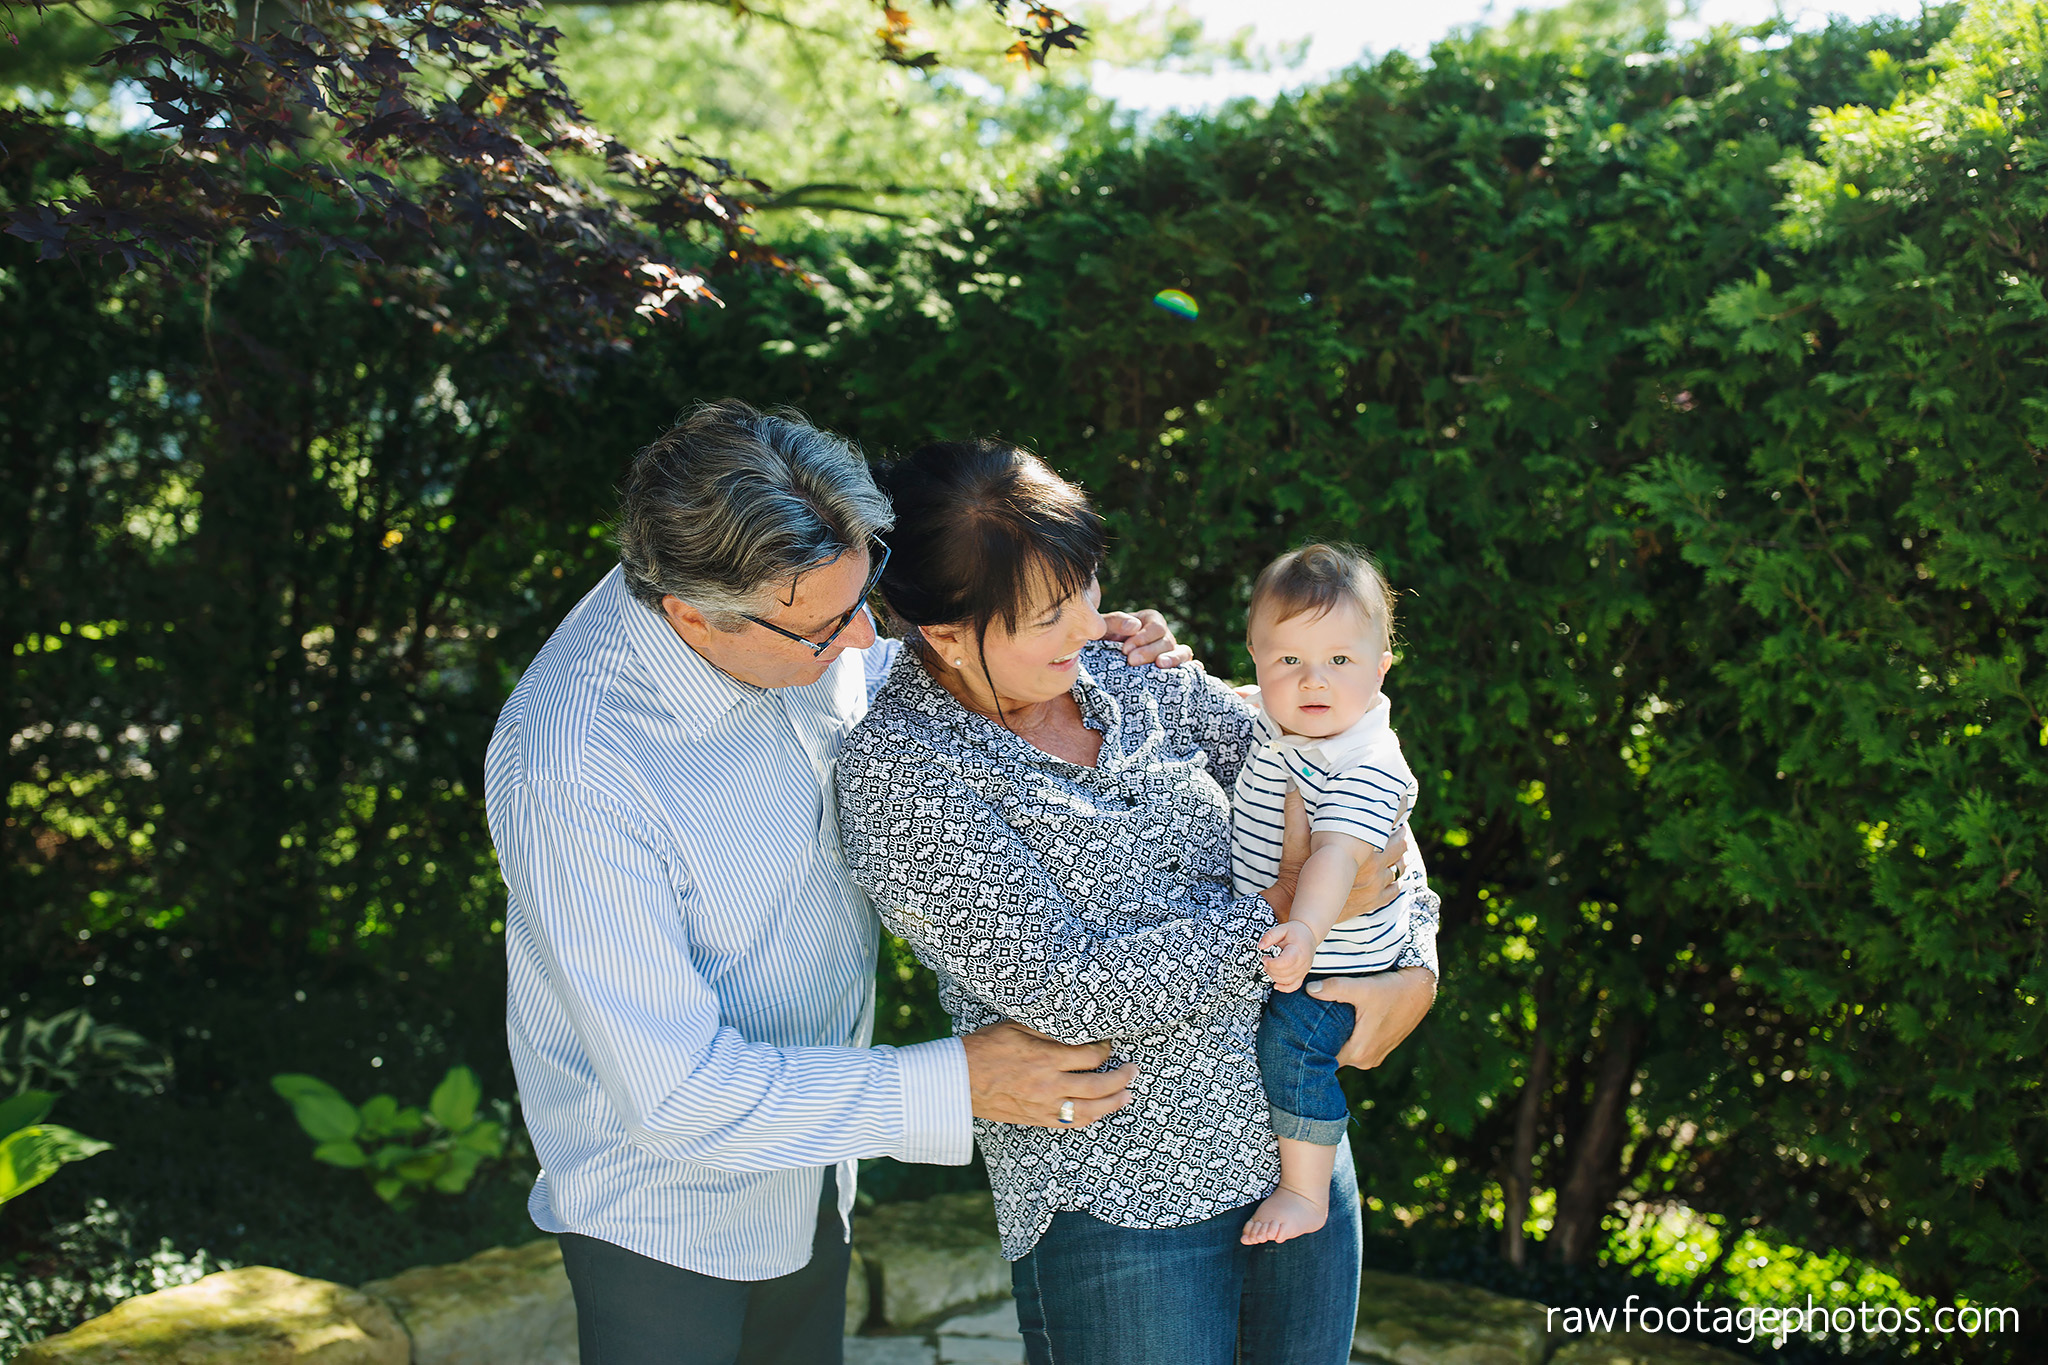 london_ontario_family_photographer-extended_family_session-raw_footage_photography004.jpg